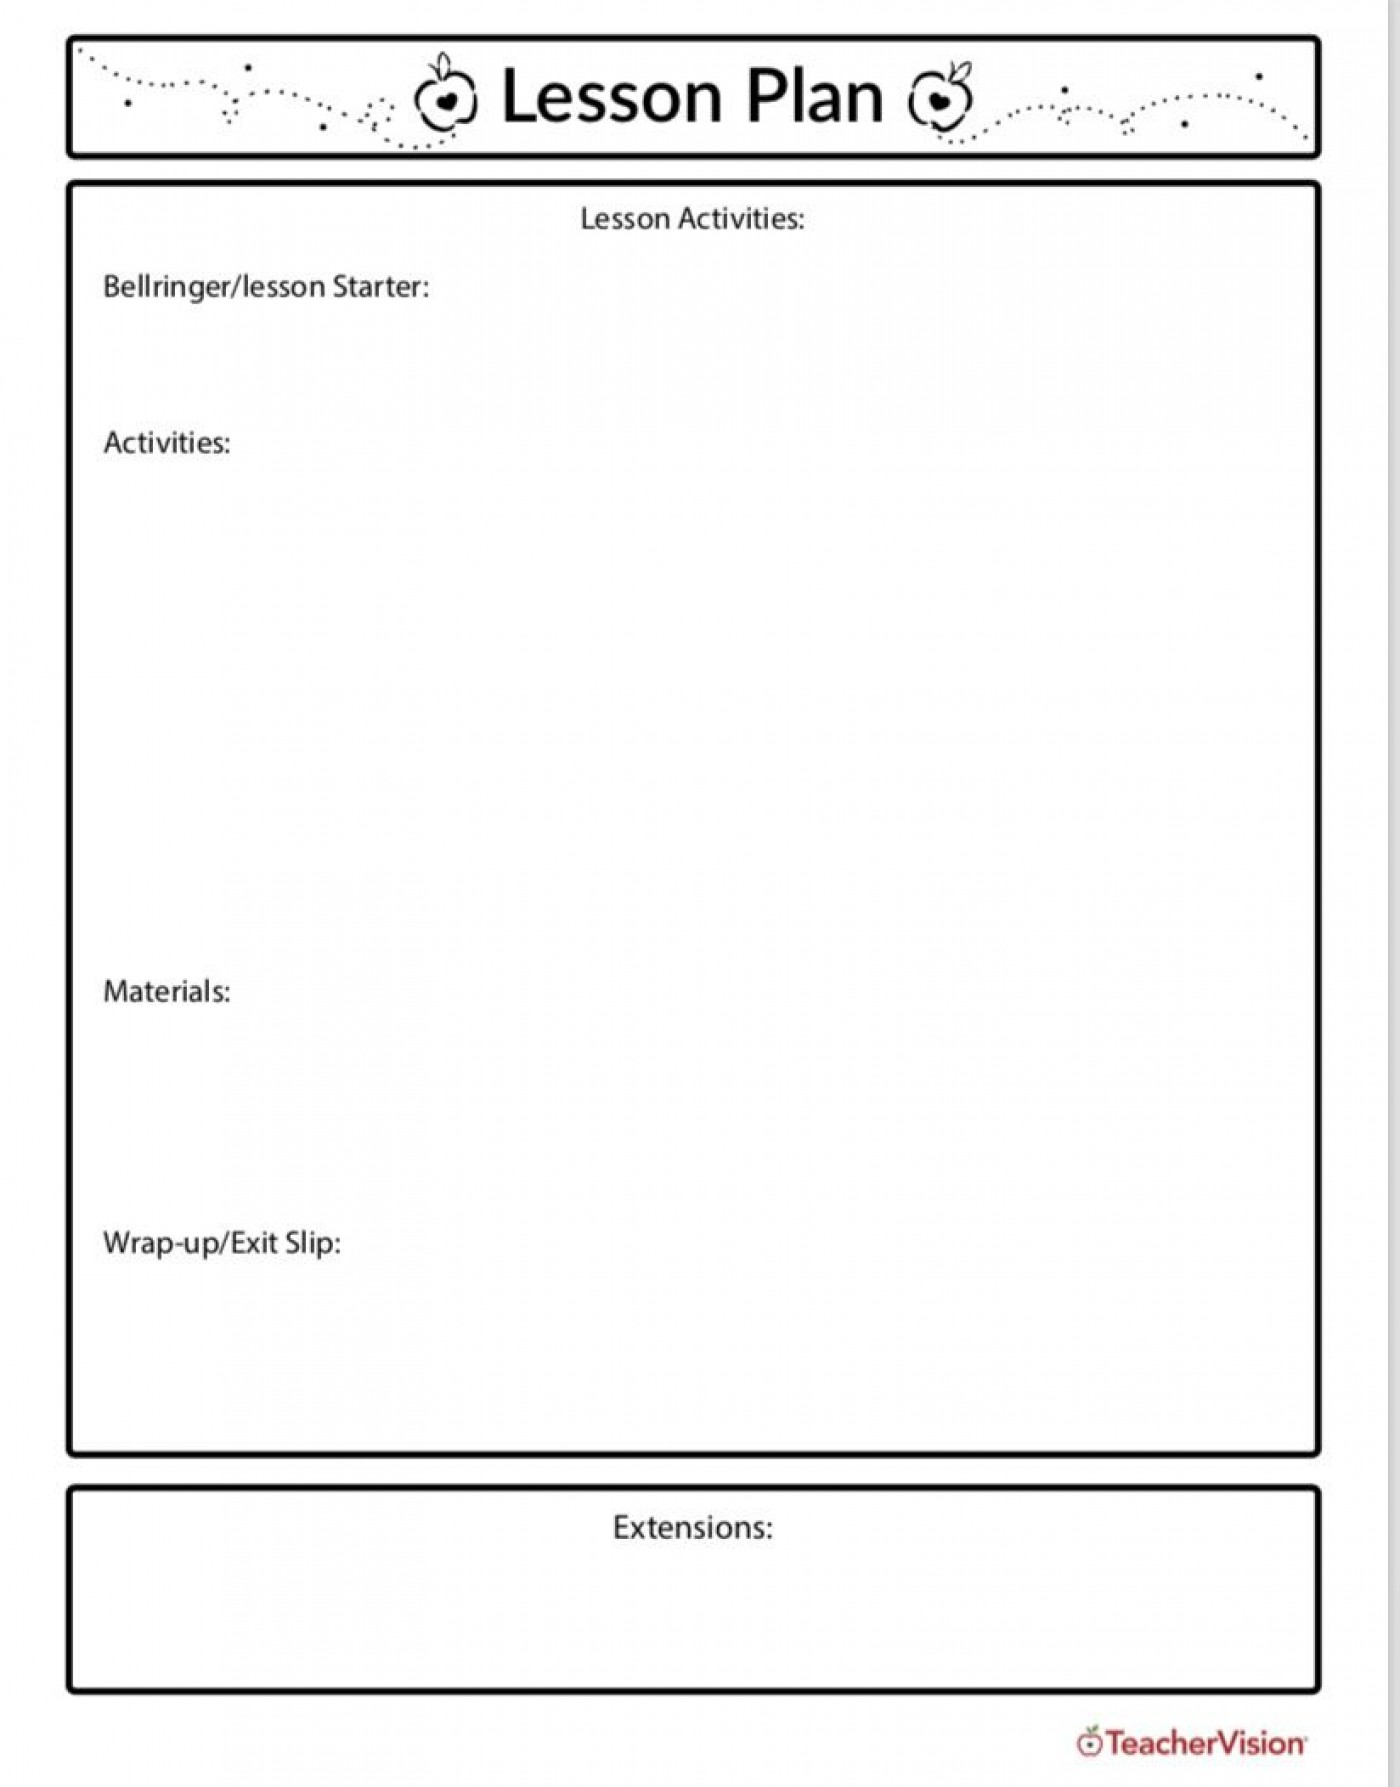 005 Simple Editable Lesson Plan Template Elementary Idea 1400